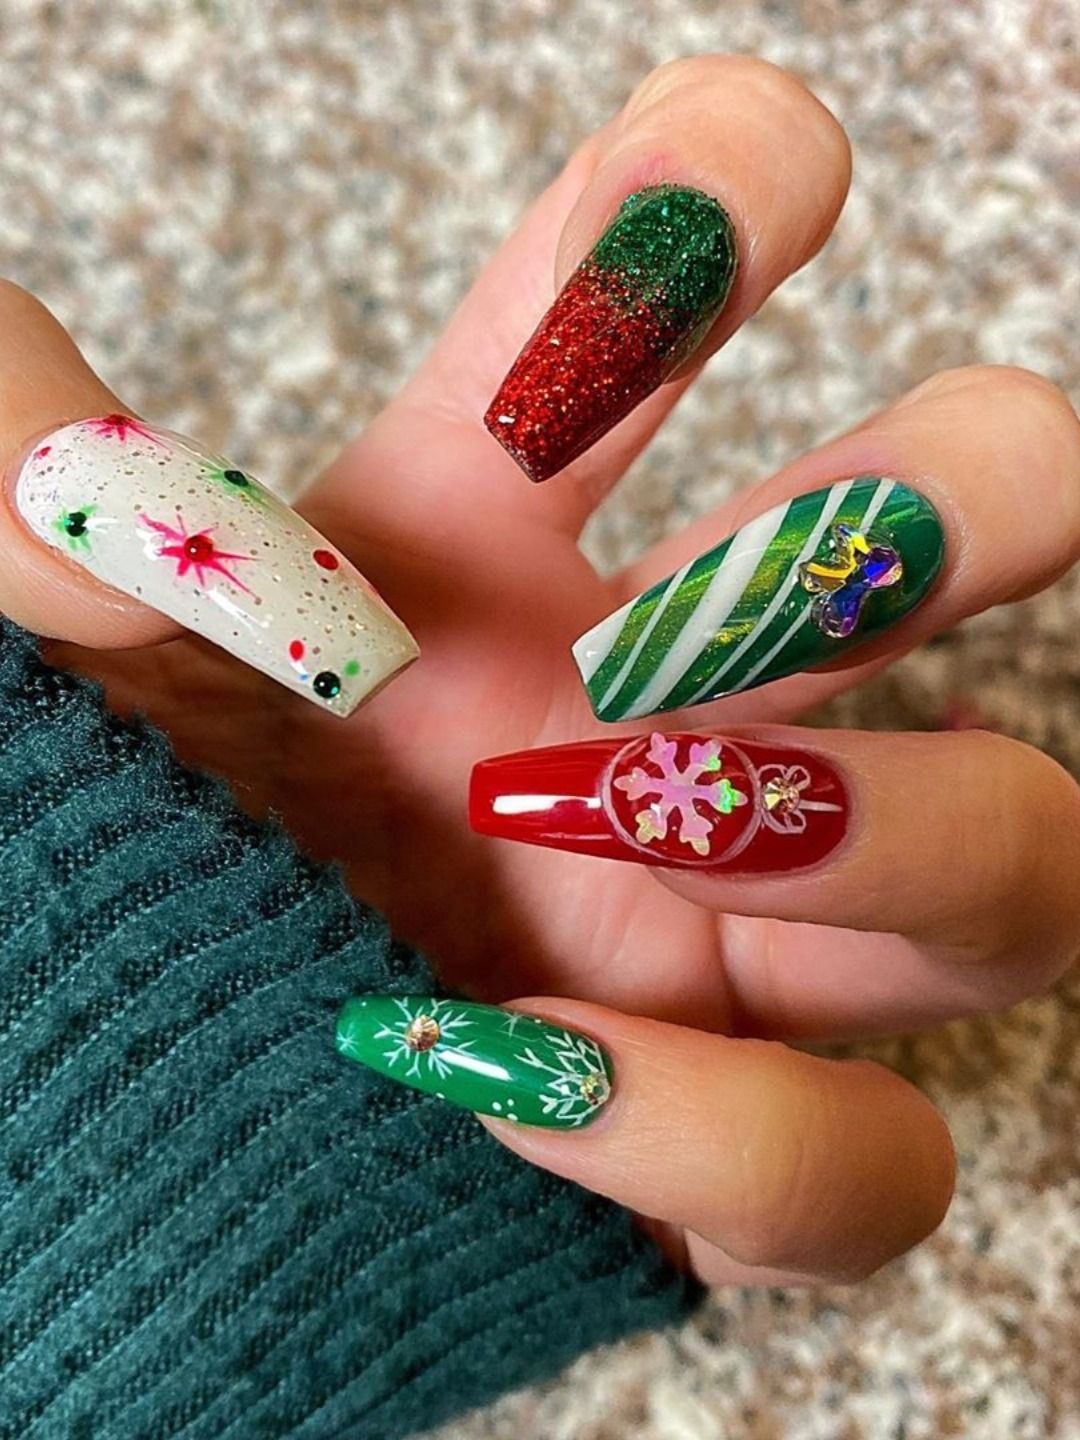 Red And Green Christmas Nails : green, christmas, nails, Cutest, Festive, Christmas, Designs, Celebration, Nails, Acrylic,, Designs,